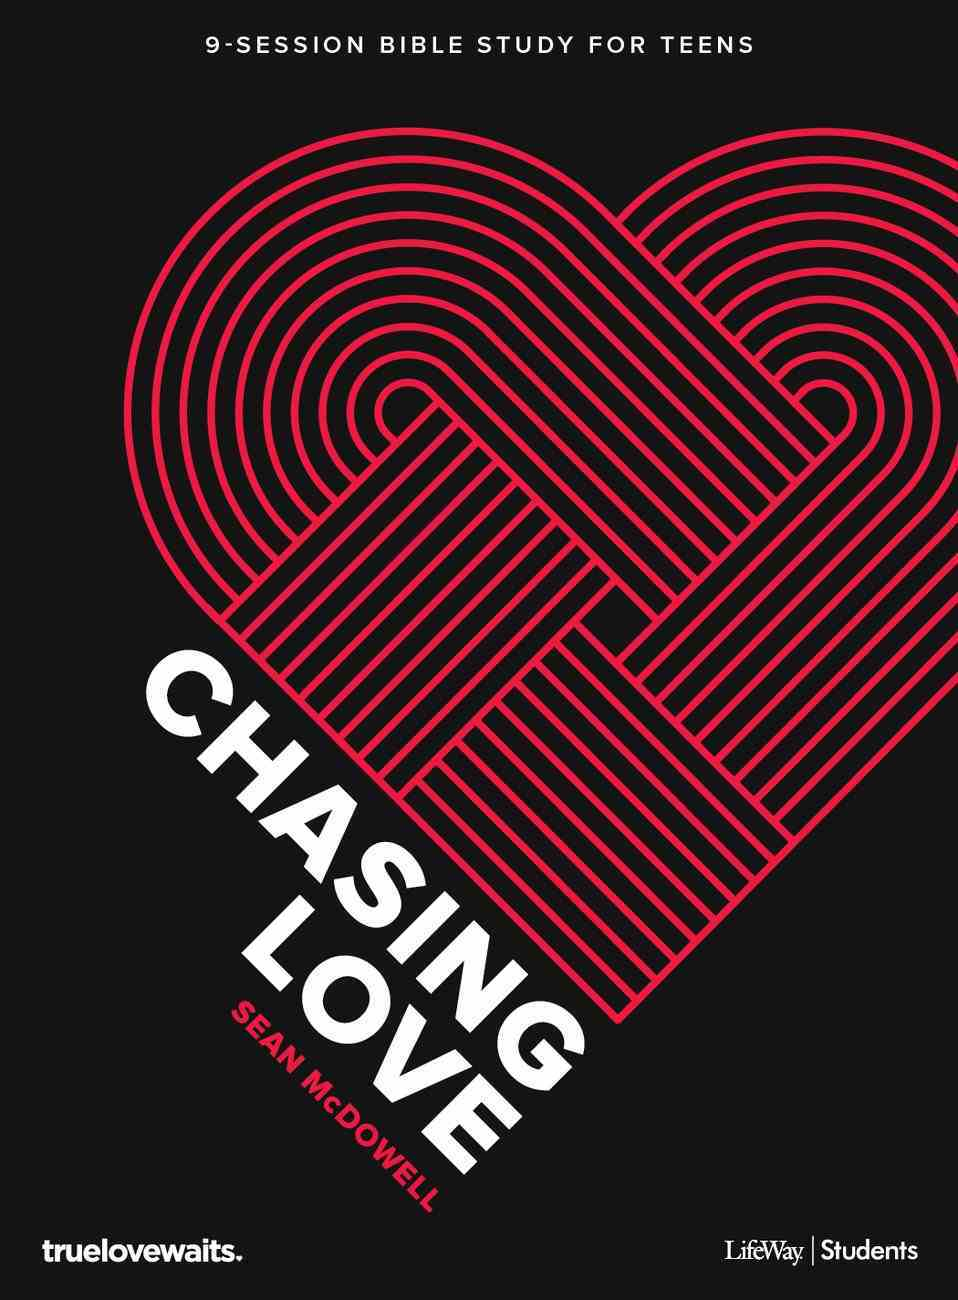 Chasing Love: A True Love Waits Bible Study (18 Sessions) (Teen Bible Study Book) Paperback